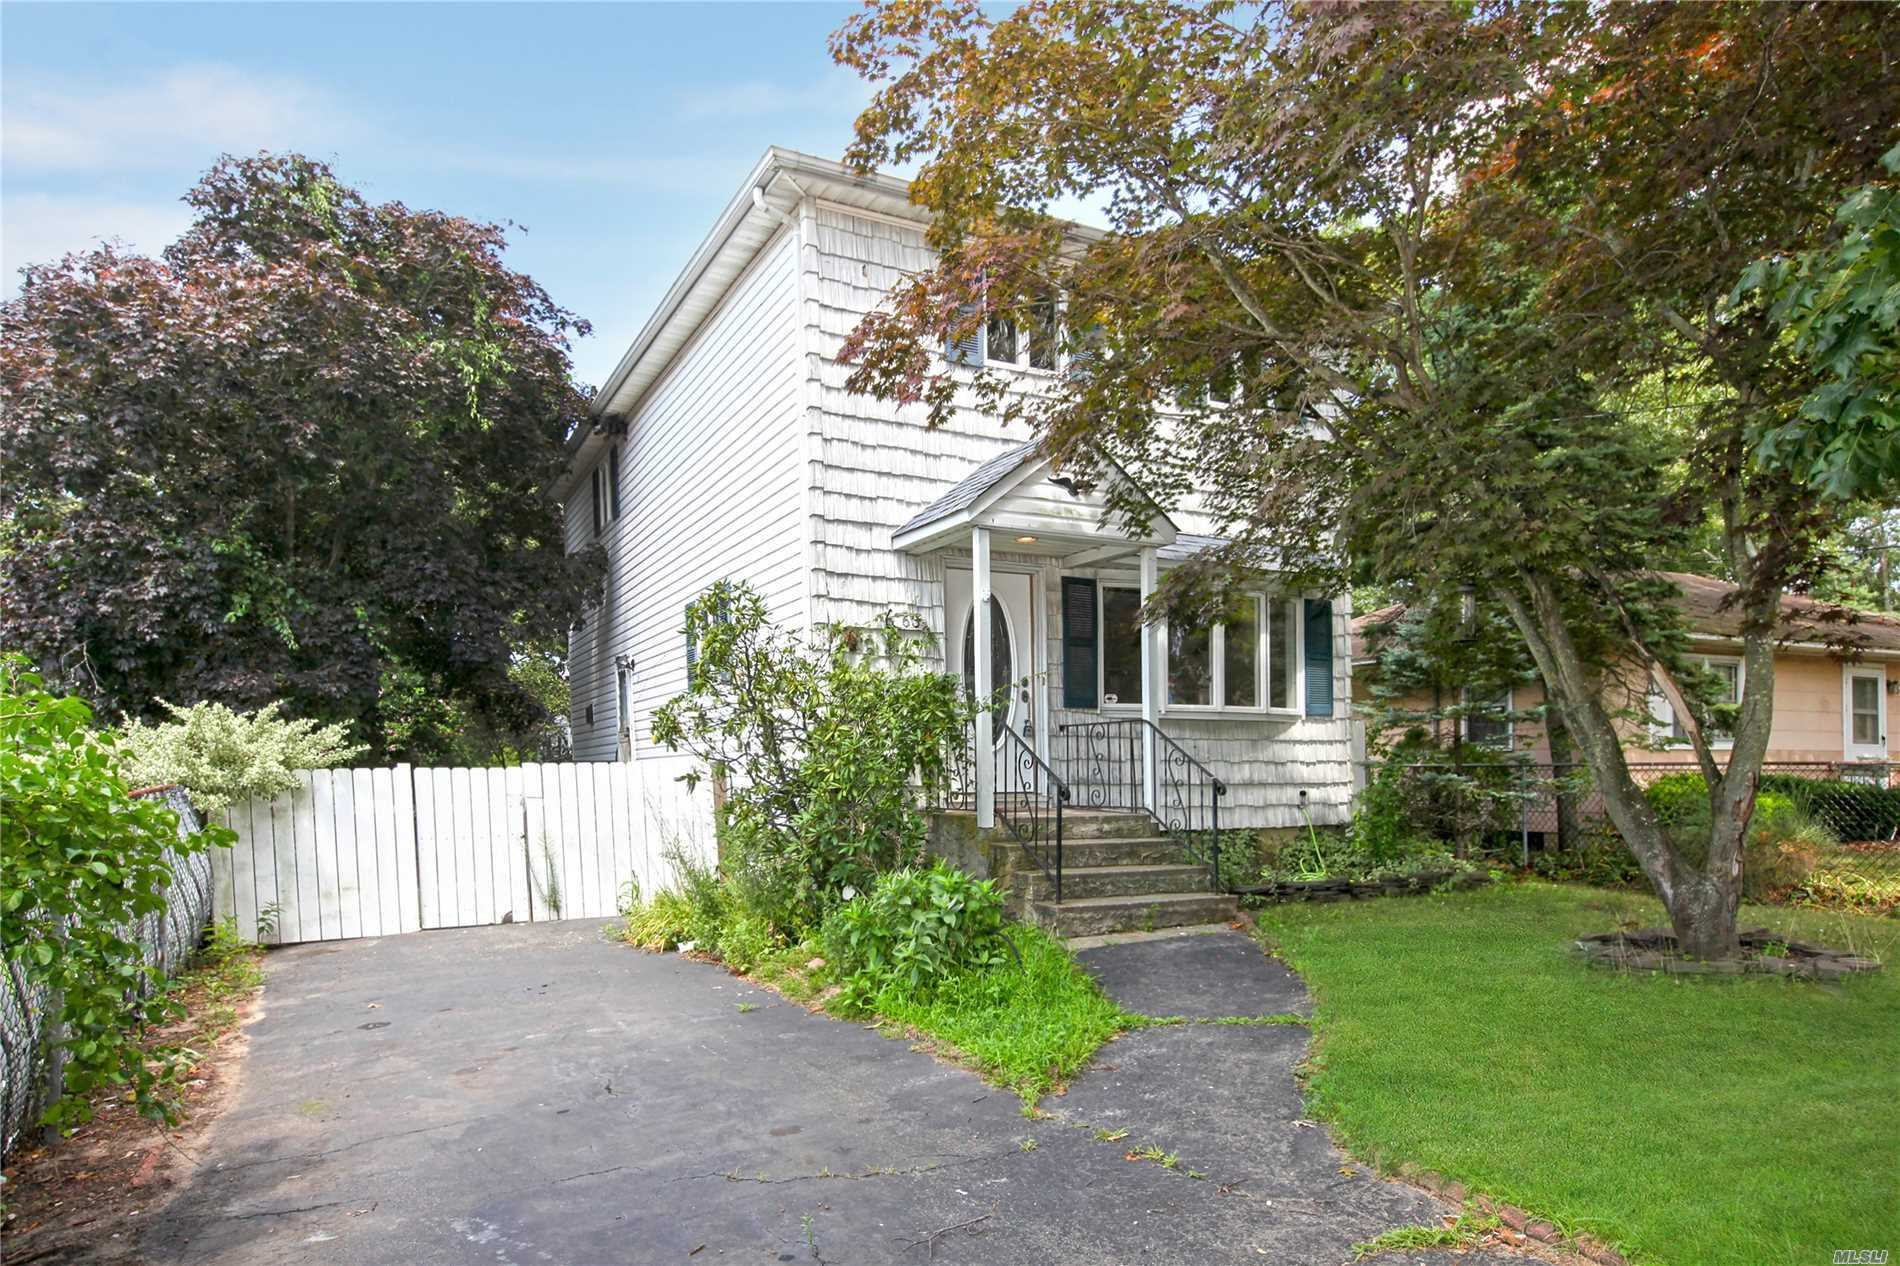 Great Opportunity To Own A Home In Patchogue For Such A Low Price. This 3 Bedroom 1 Full Bath Colonial Offers A New Kitchen With A Tiled Back-Splash & Granite With New Appliances, Newly Finished Oak Flooring Throughout, Freshly Painted Including The Basement. Home Located On A Dead End Street. Don't Miss Out On This Great Opportunity.